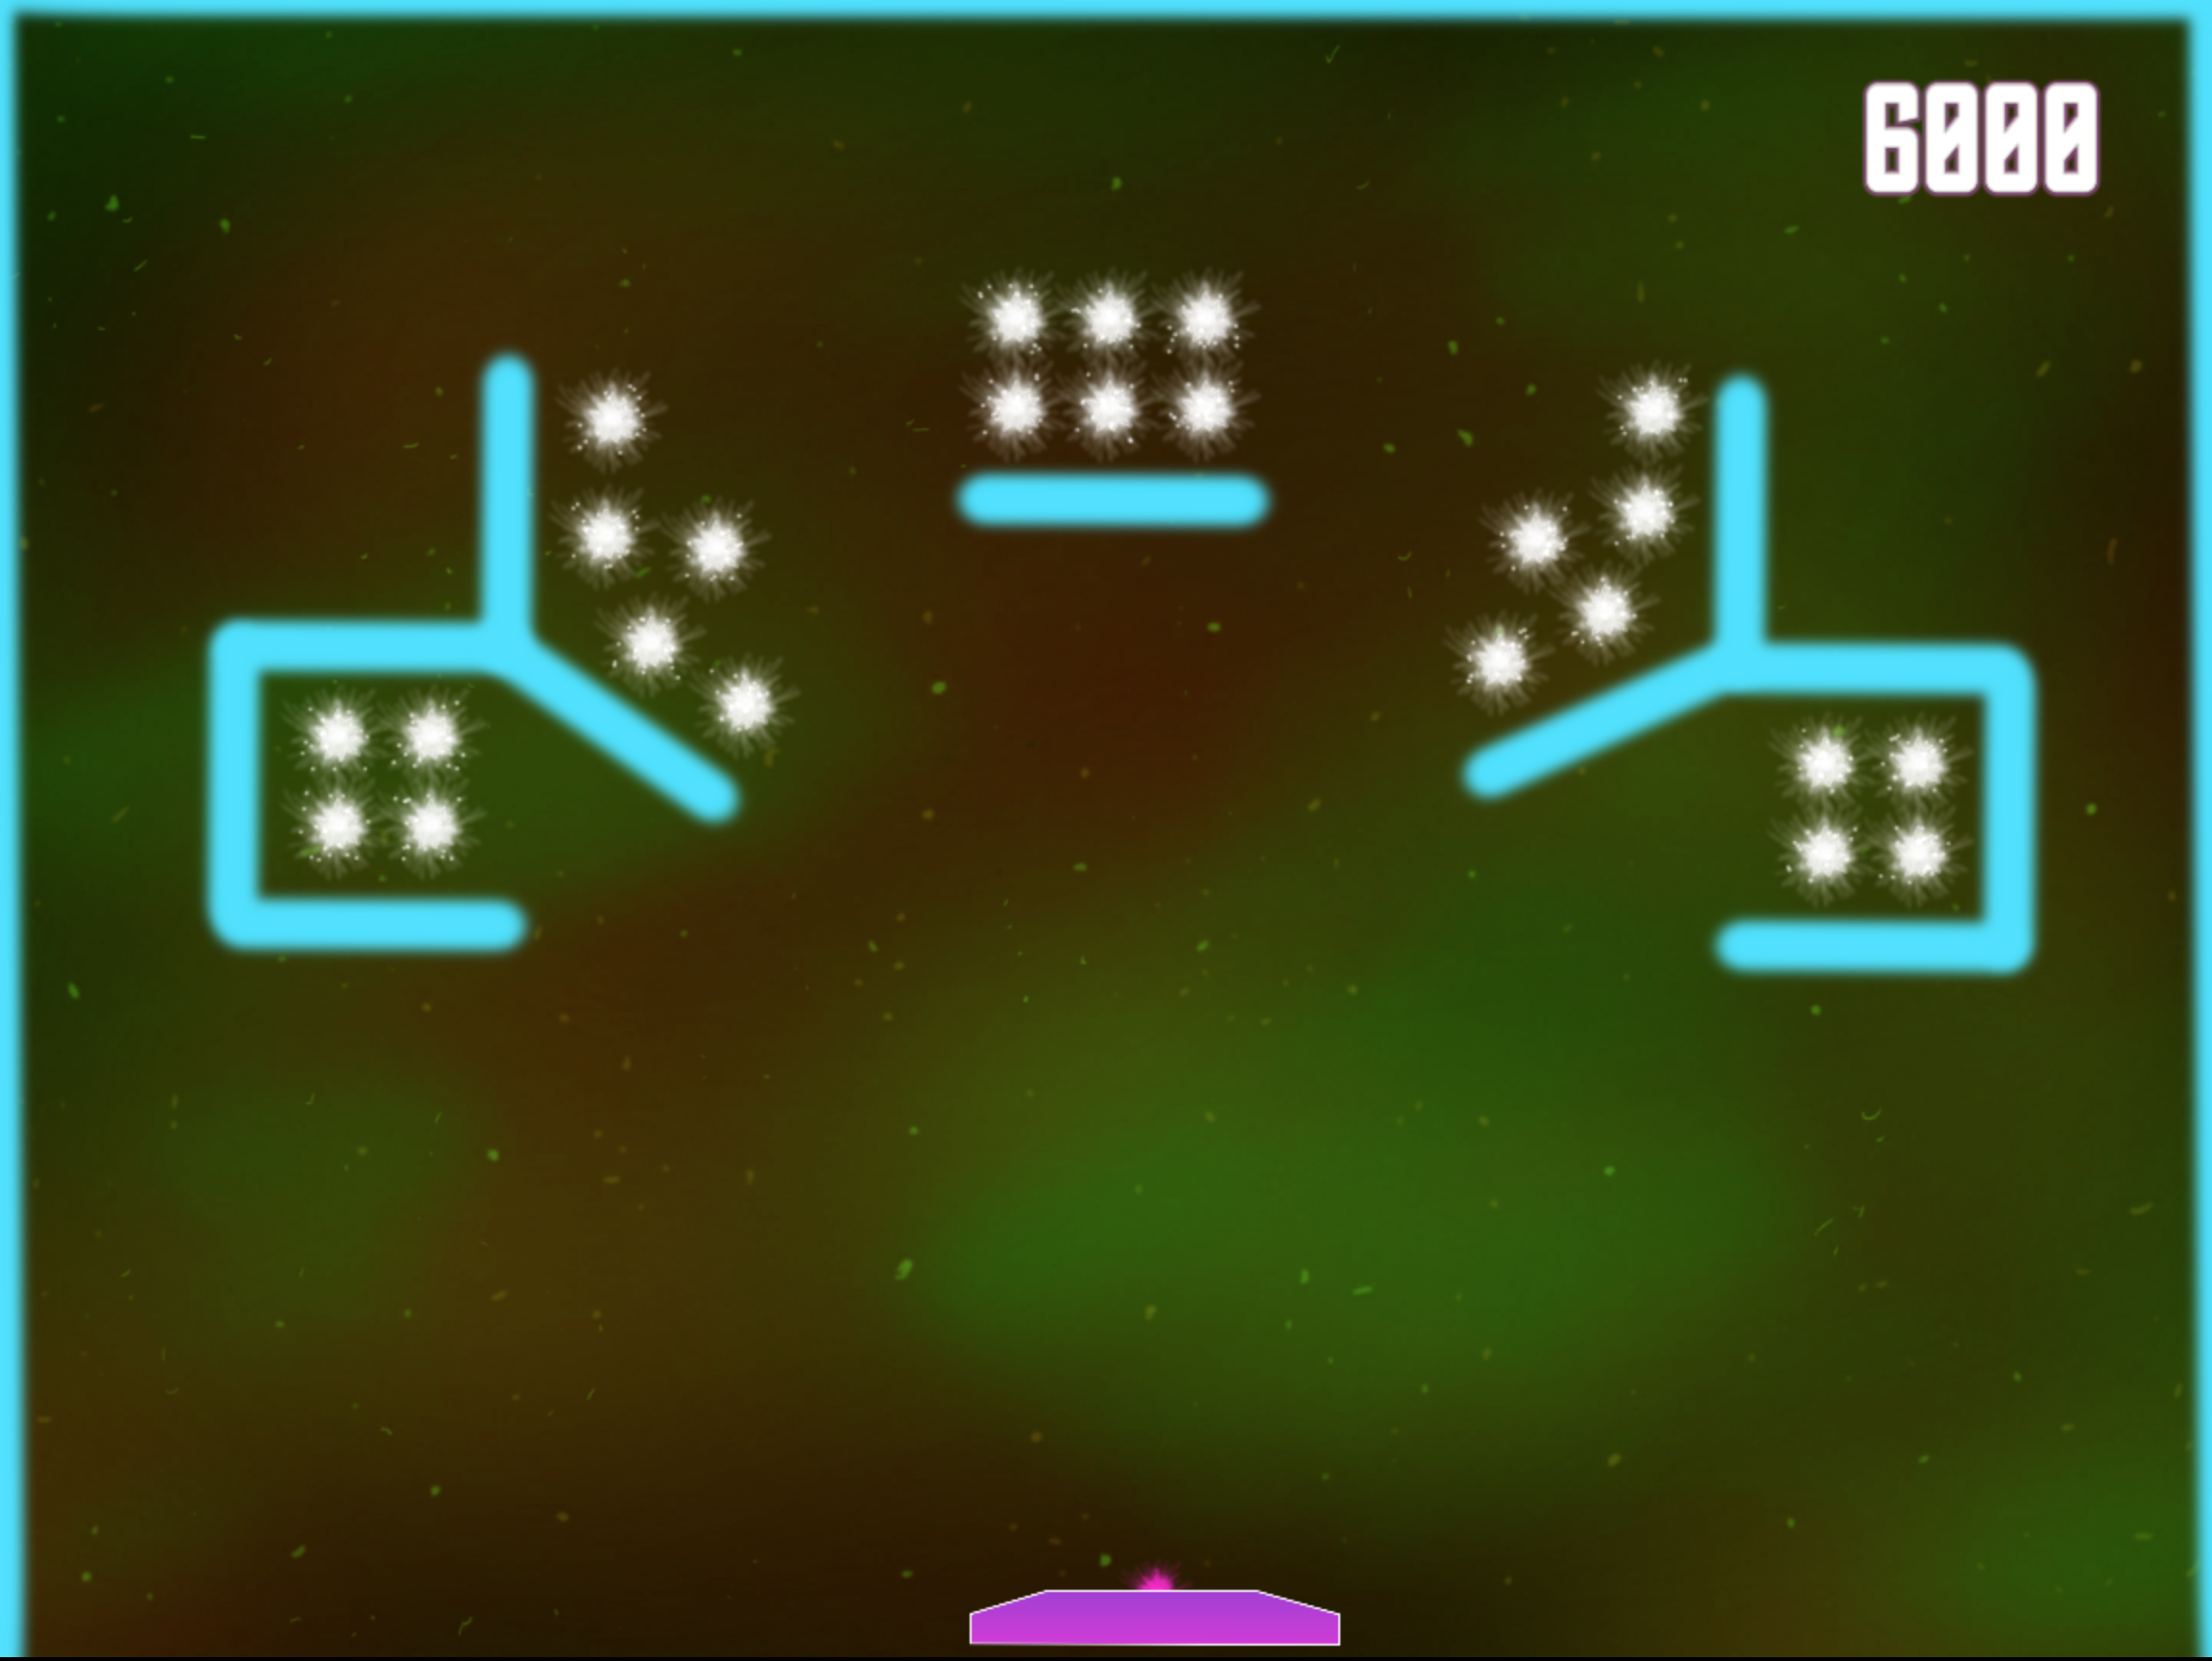 Level 3 - Shooting Stars:  Combines ideas from the first two levels, player must balance a few different challenges before we add a new wrinkle.